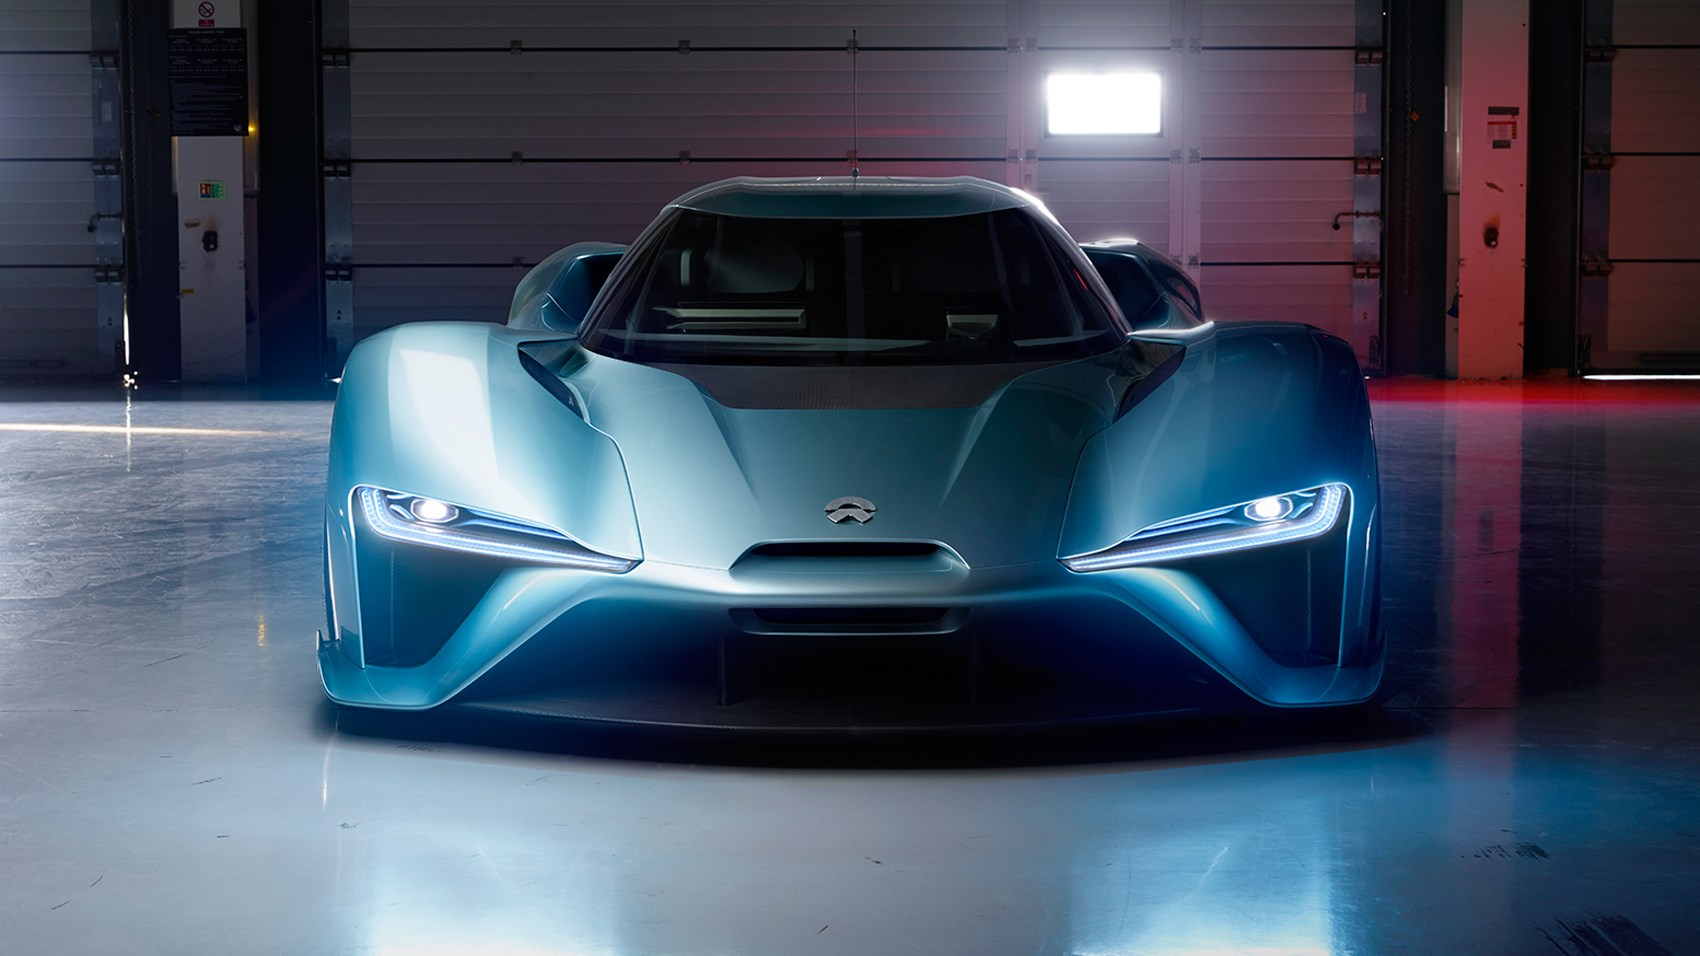 Nurburgring Lap Record Broken By Nio Ep9 Electric Supercar